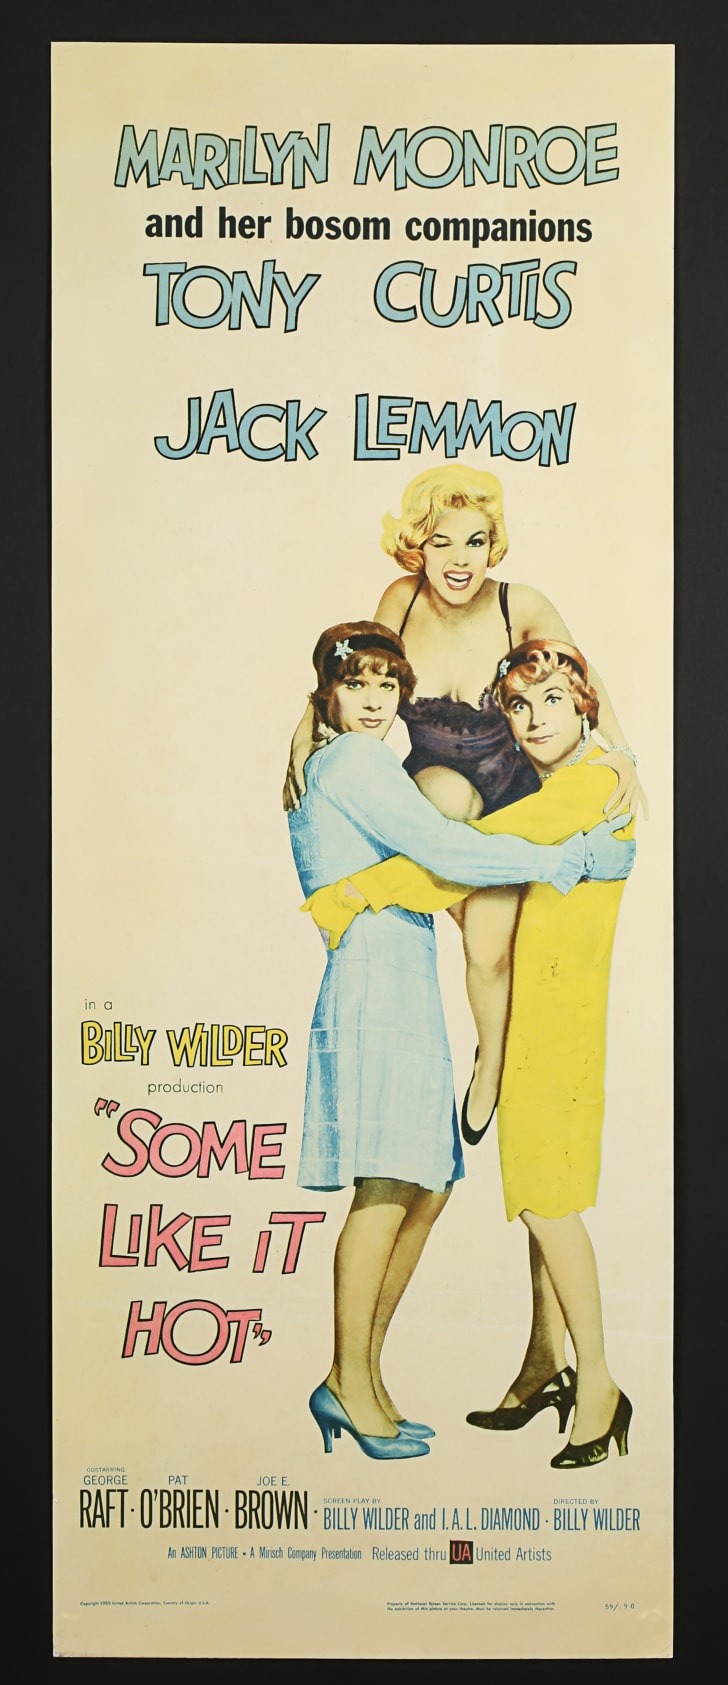 A poster of the film Some Like It Hot